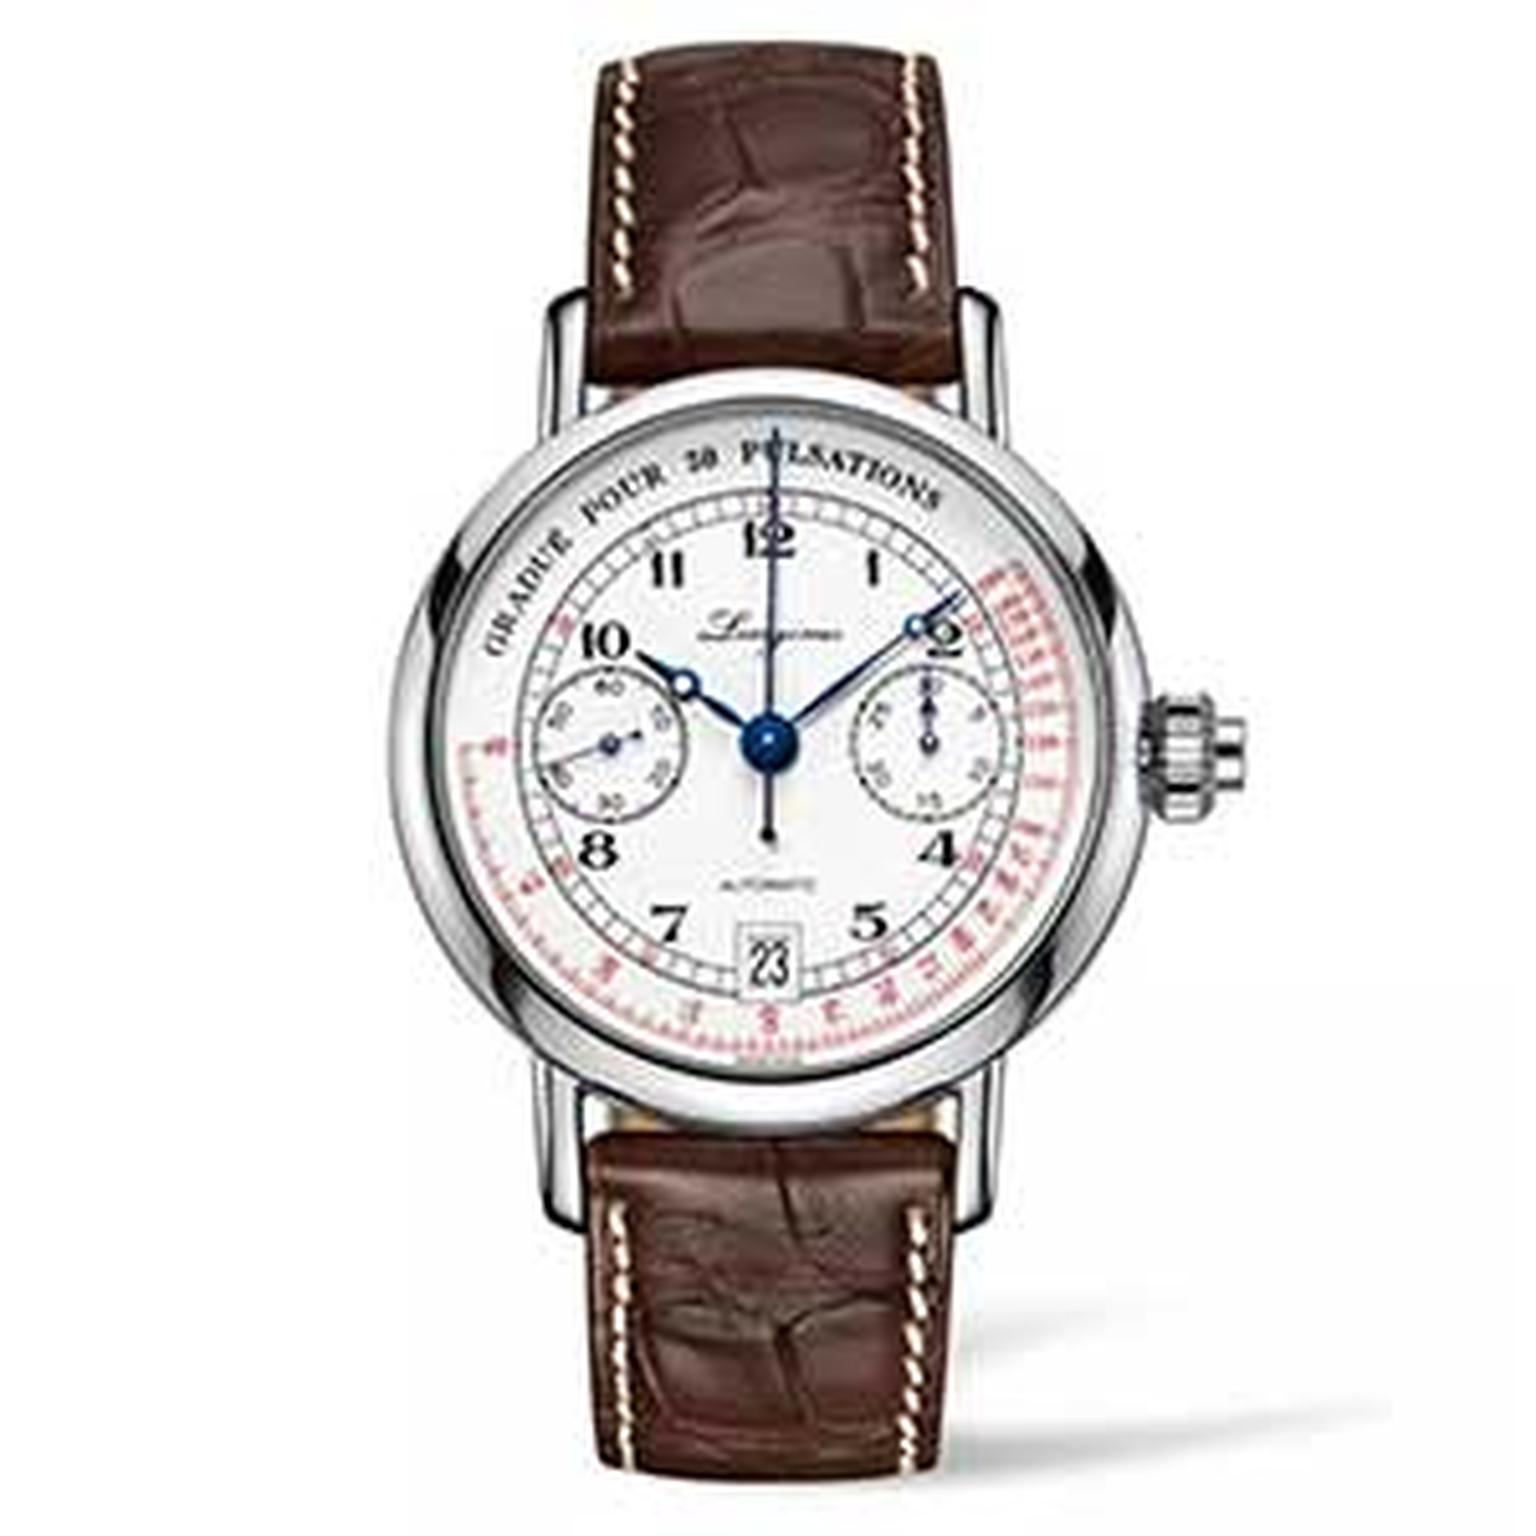 Longines -doctors -watch